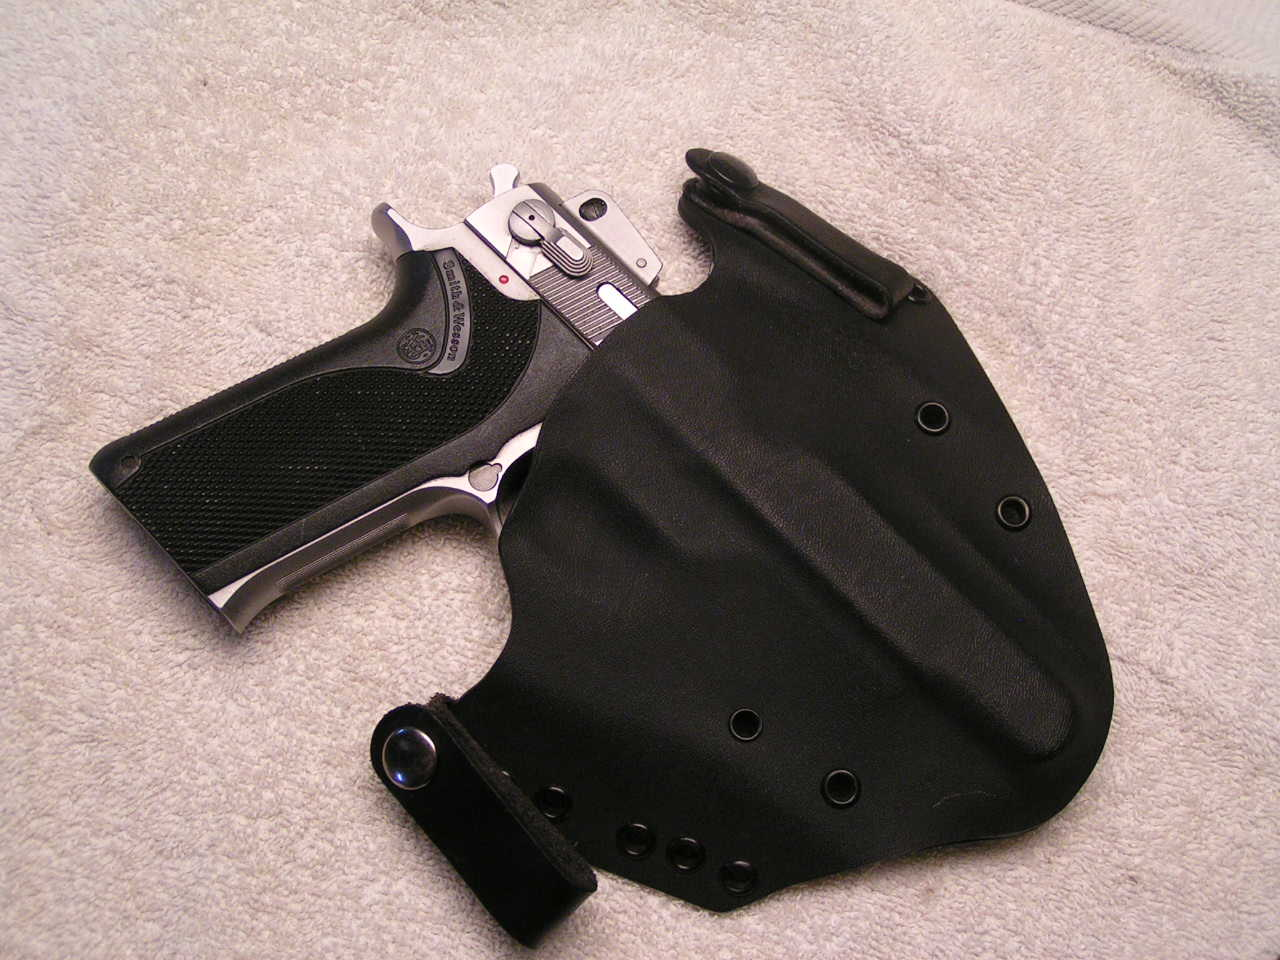 Need a holster ...-1006-10mm-020.jpg